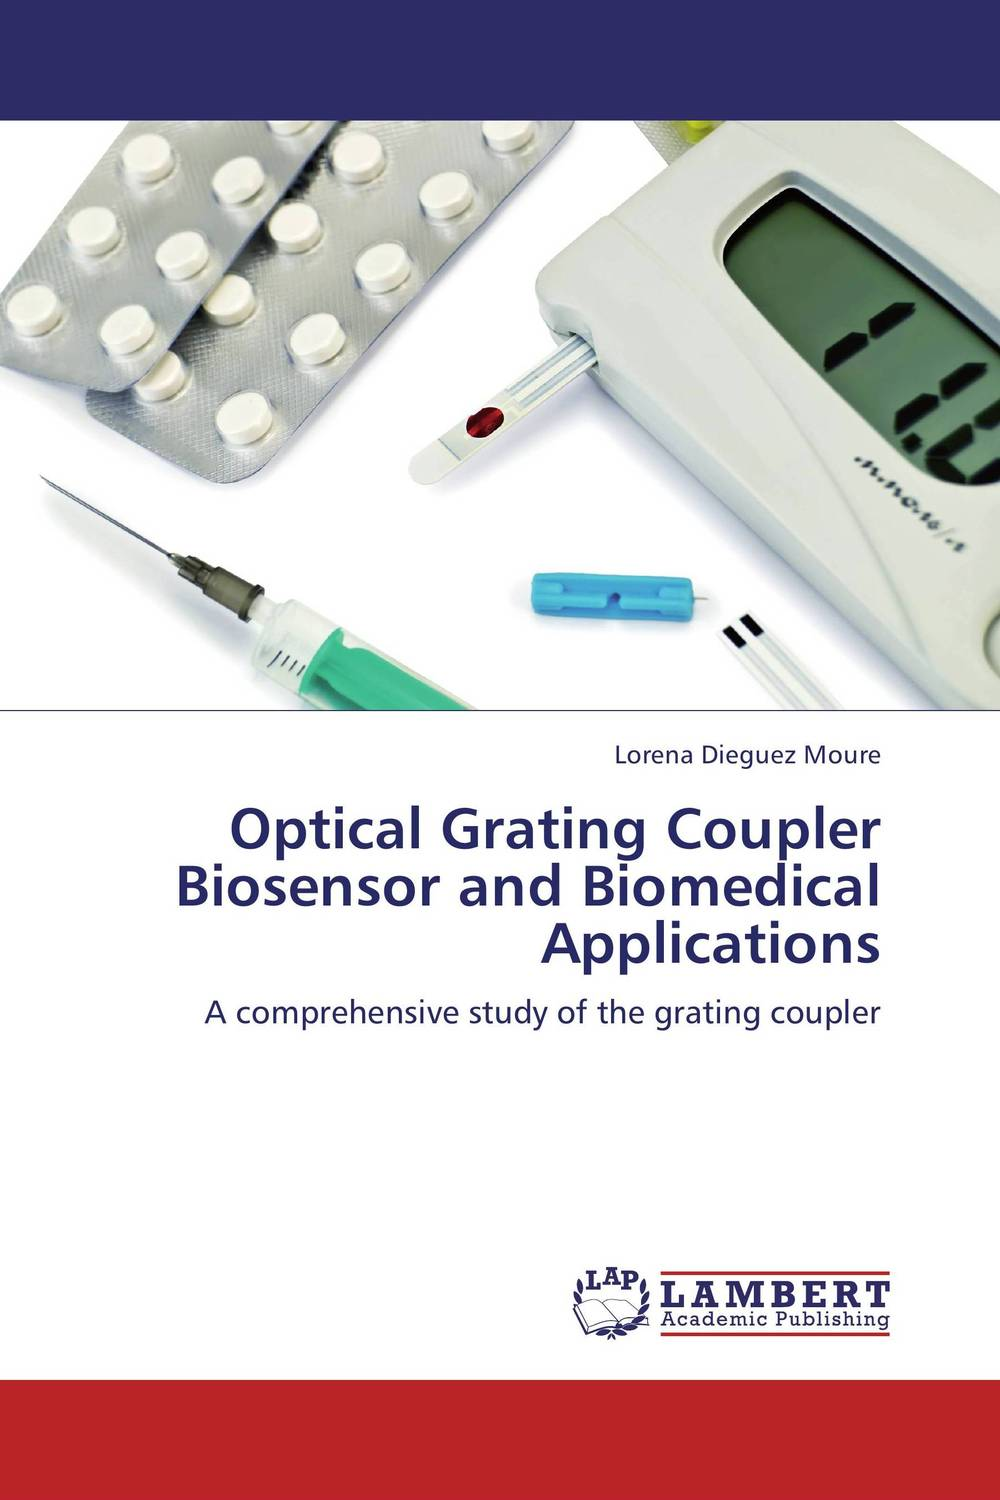 Optical Grating Coupler Biosensor and Biomedical Applications enzyme electrodes for biosensor & biofuel cell applications page 3